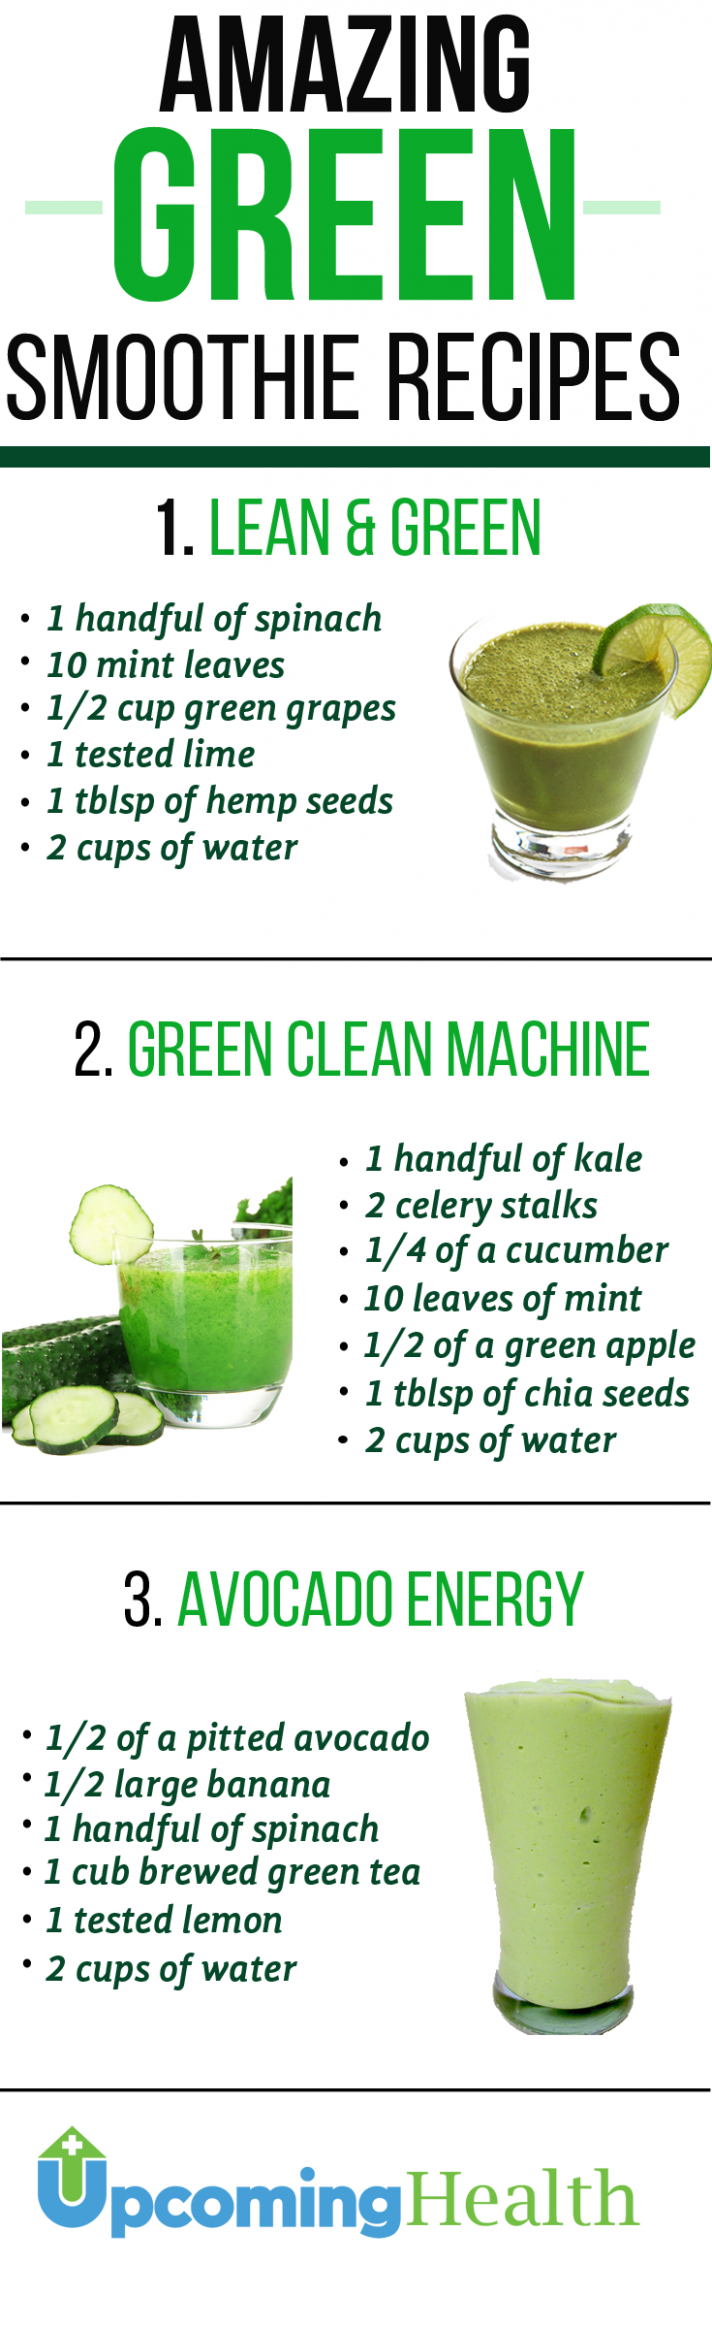 Green Smoothies Will Revolutionize Your Health - smoothie recipes that are healthy